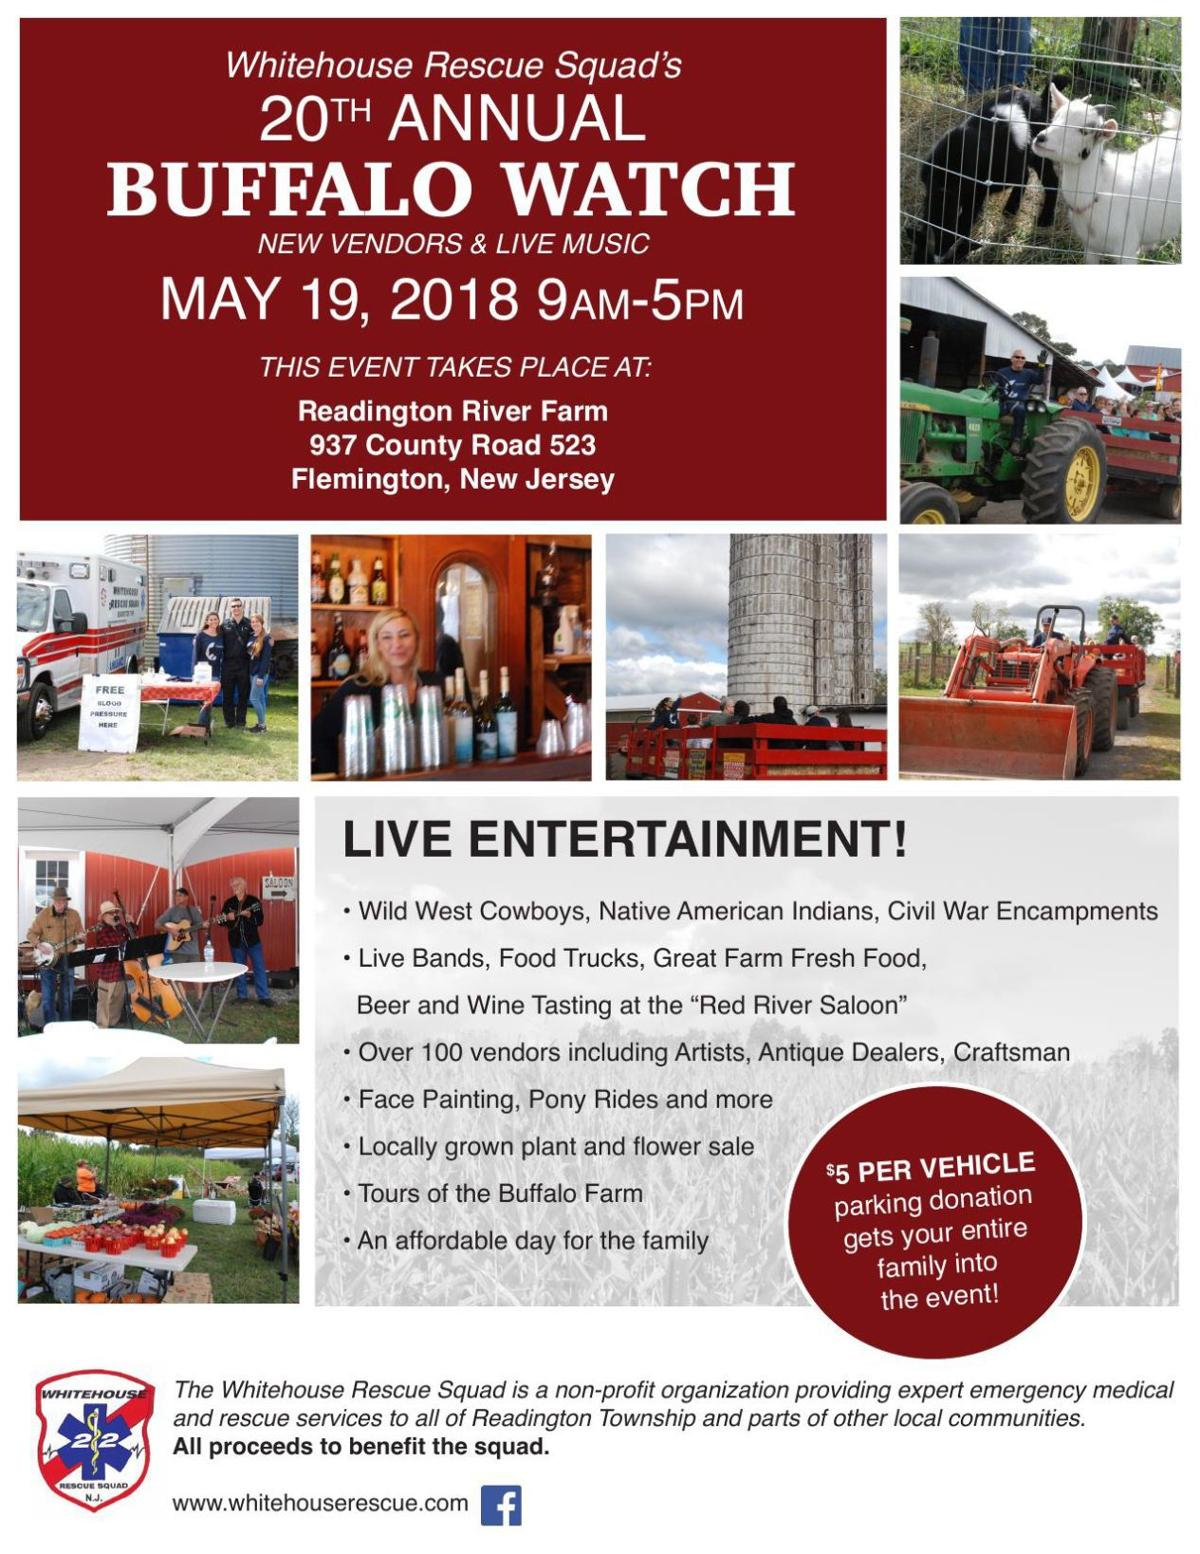 Whitehouse Rescue Squad S Buffalo Watch Postponed To Saturday June 9 Due To Weather Newjerseyhills Com